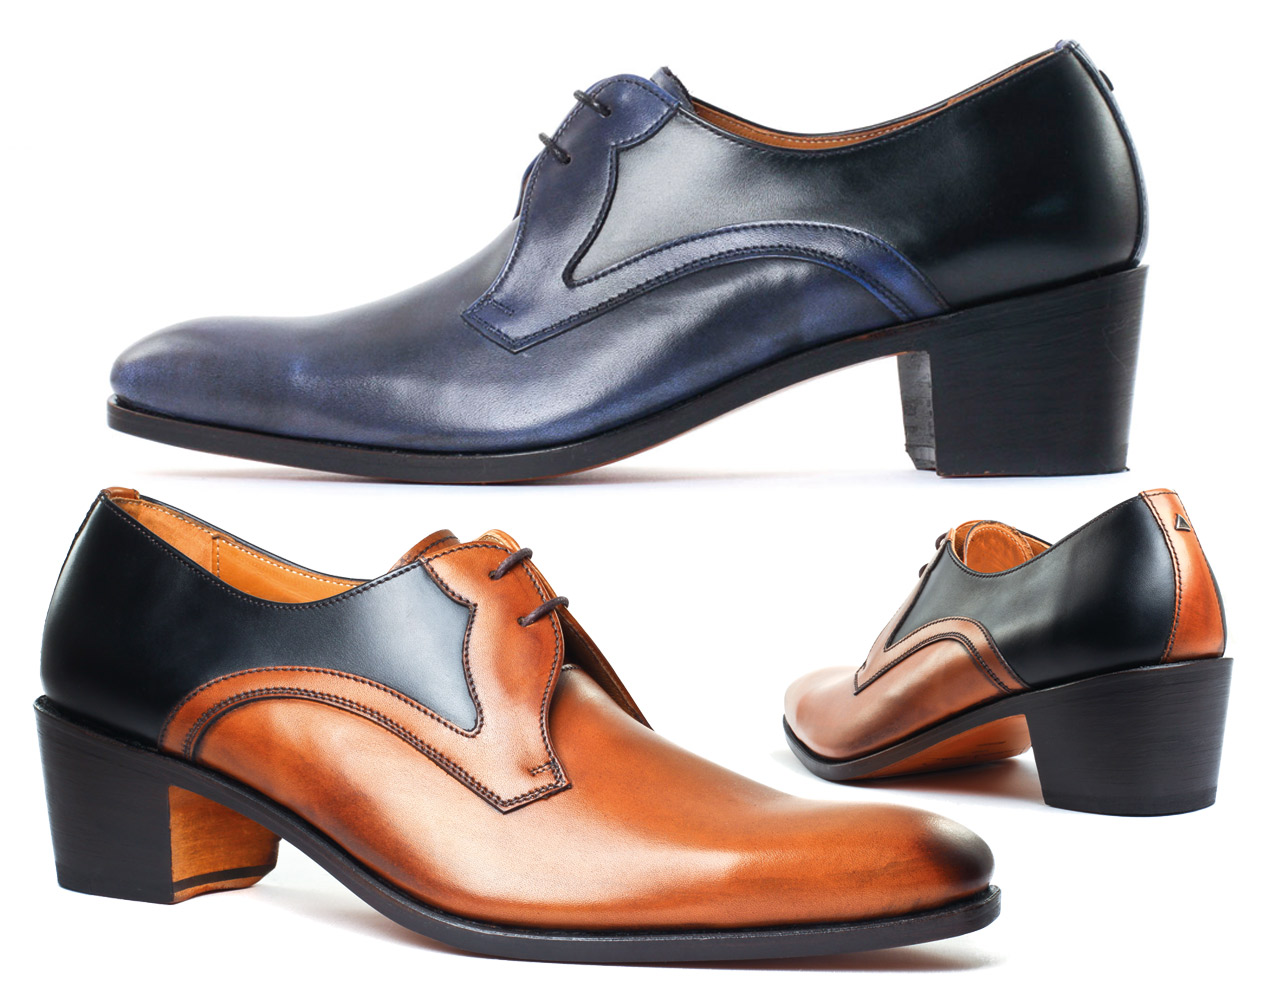 Shoes with high heel for men | LOUVRE Satin miel - calf noir | Wax Bleue